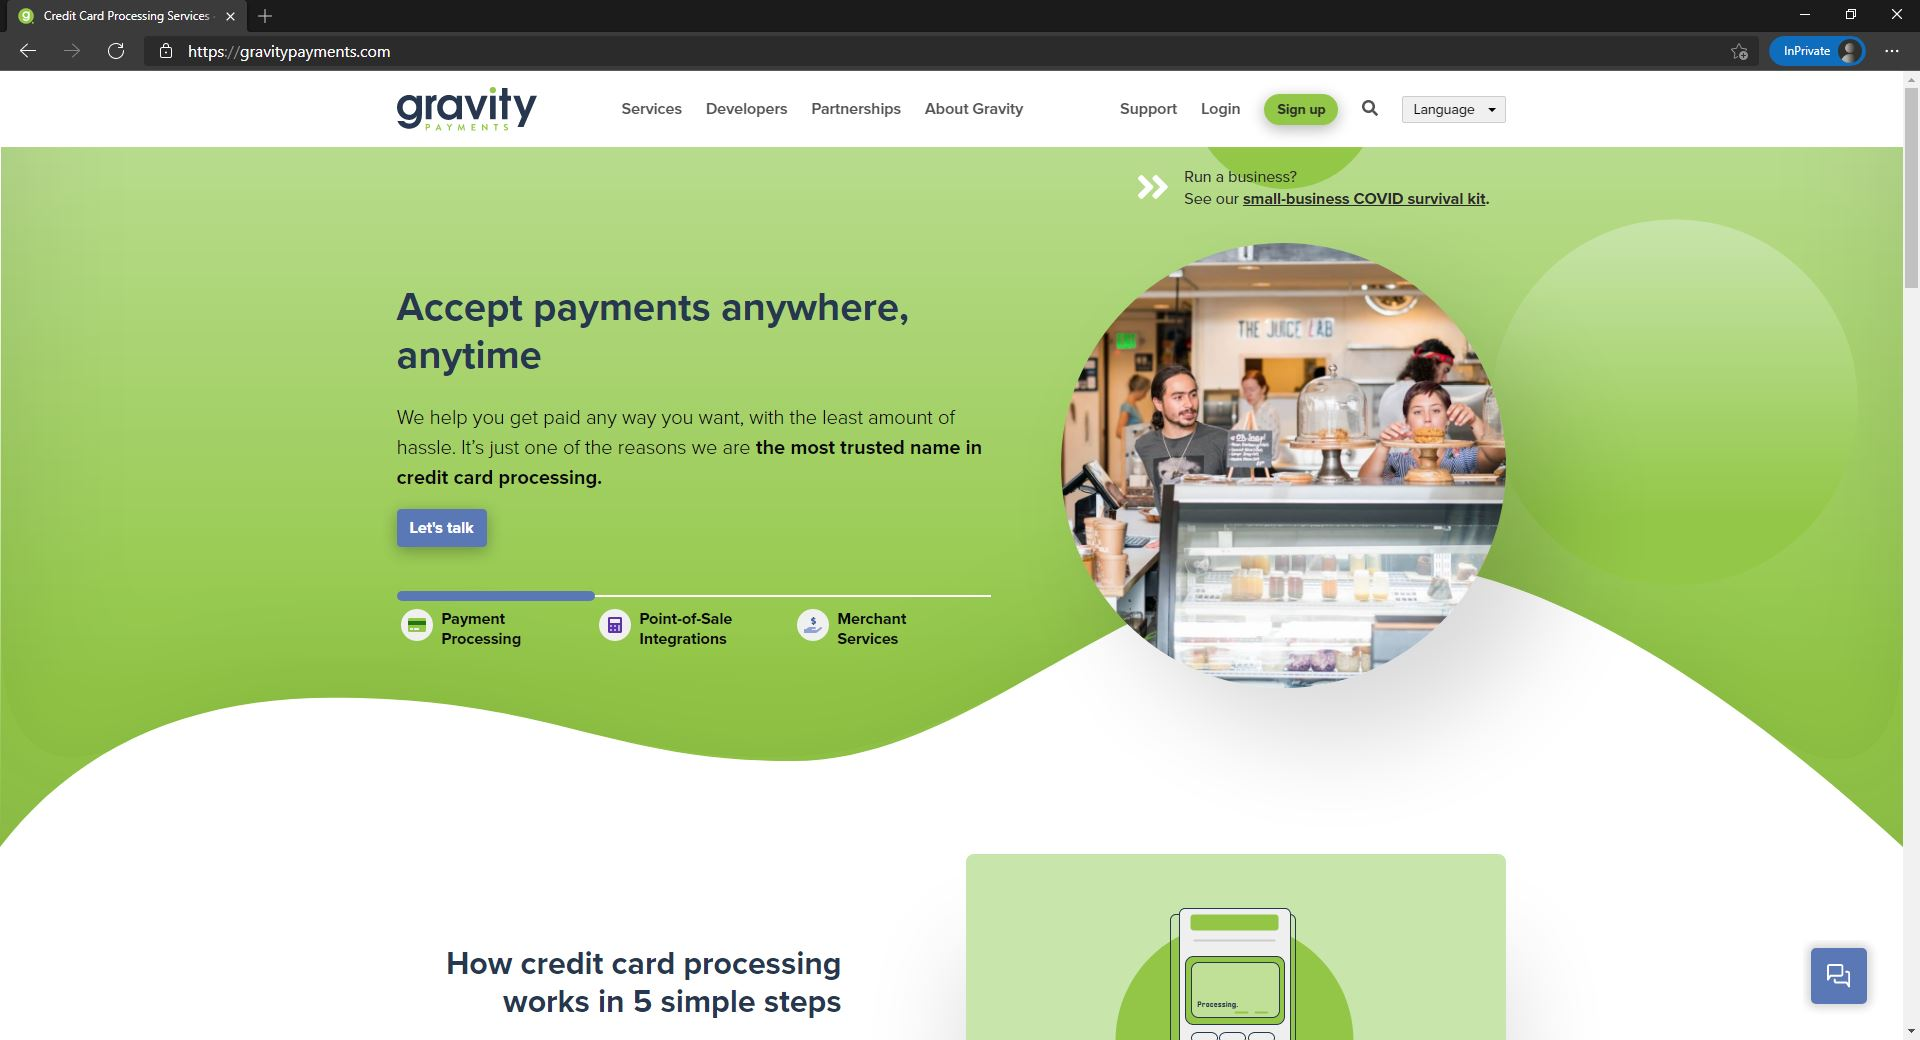 Gravity payments website homepage